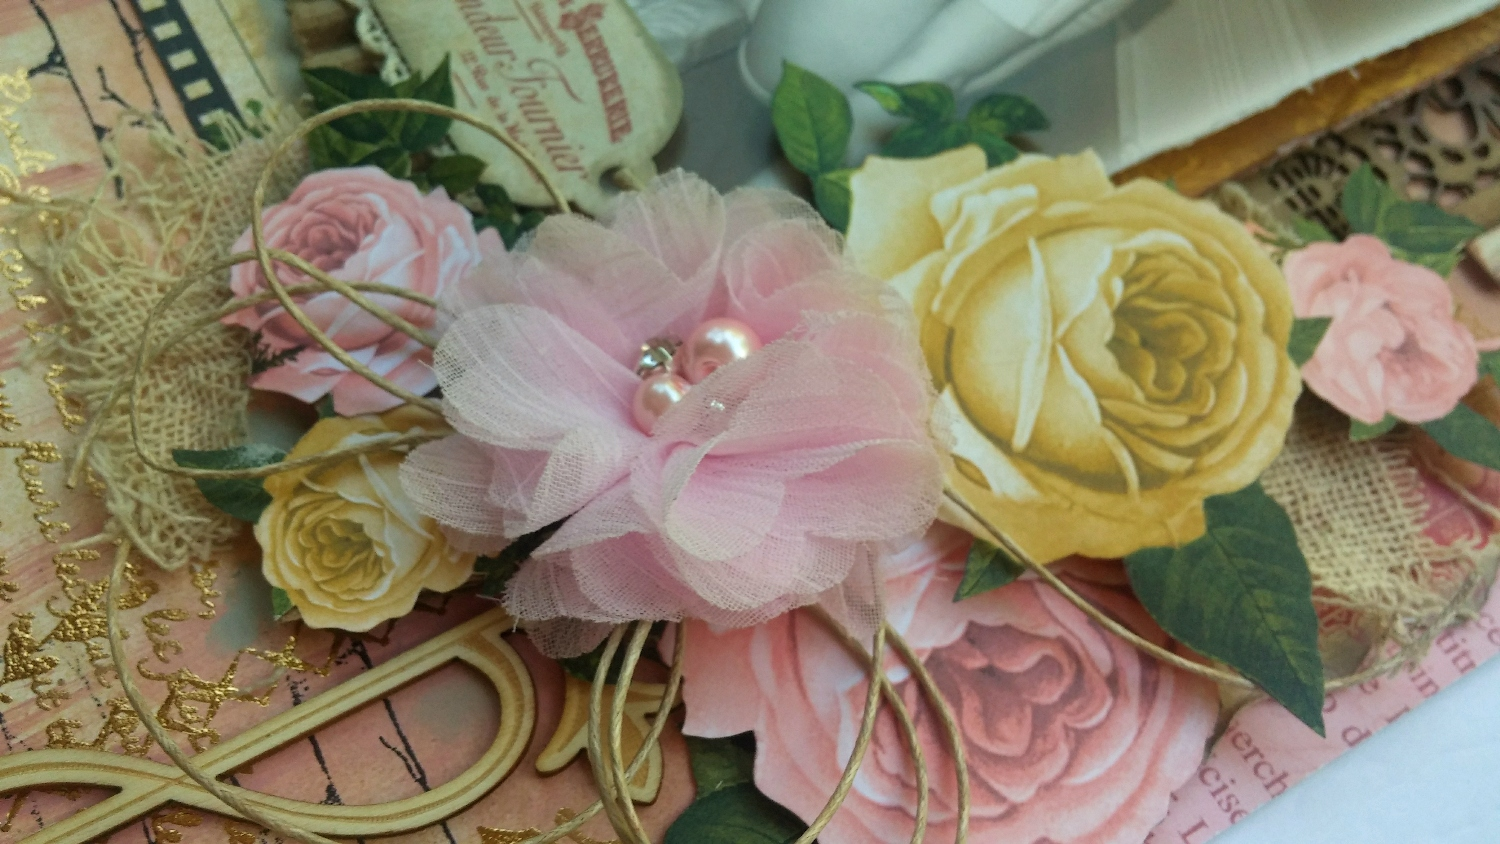 Juliet scrapbook ideas - For My Centerpiece Flower I Used One Of My Favorite Fabric Blooms From My Friend Lucy S Etsy Shop Tresors De Luxe I Thought The Fluffy Pink Bloom Would Go